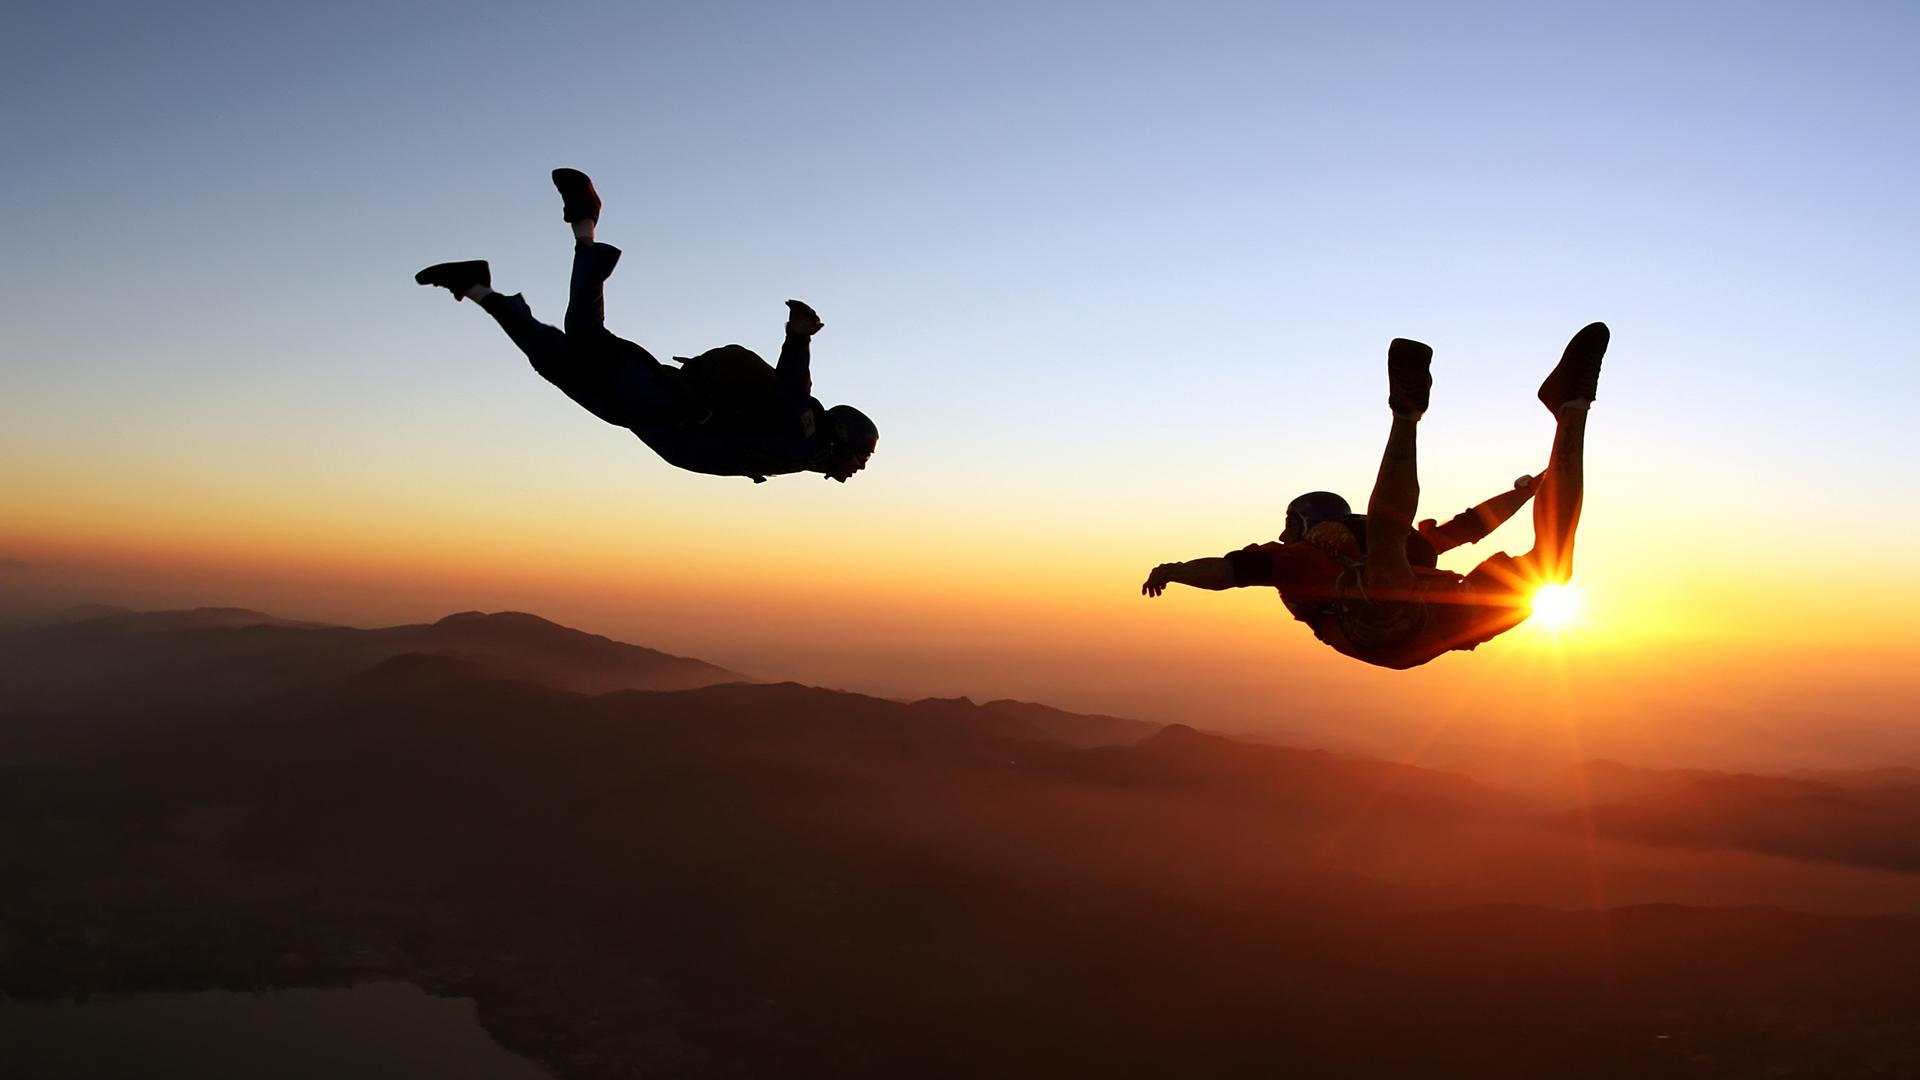 Skydiving sunset - Image.